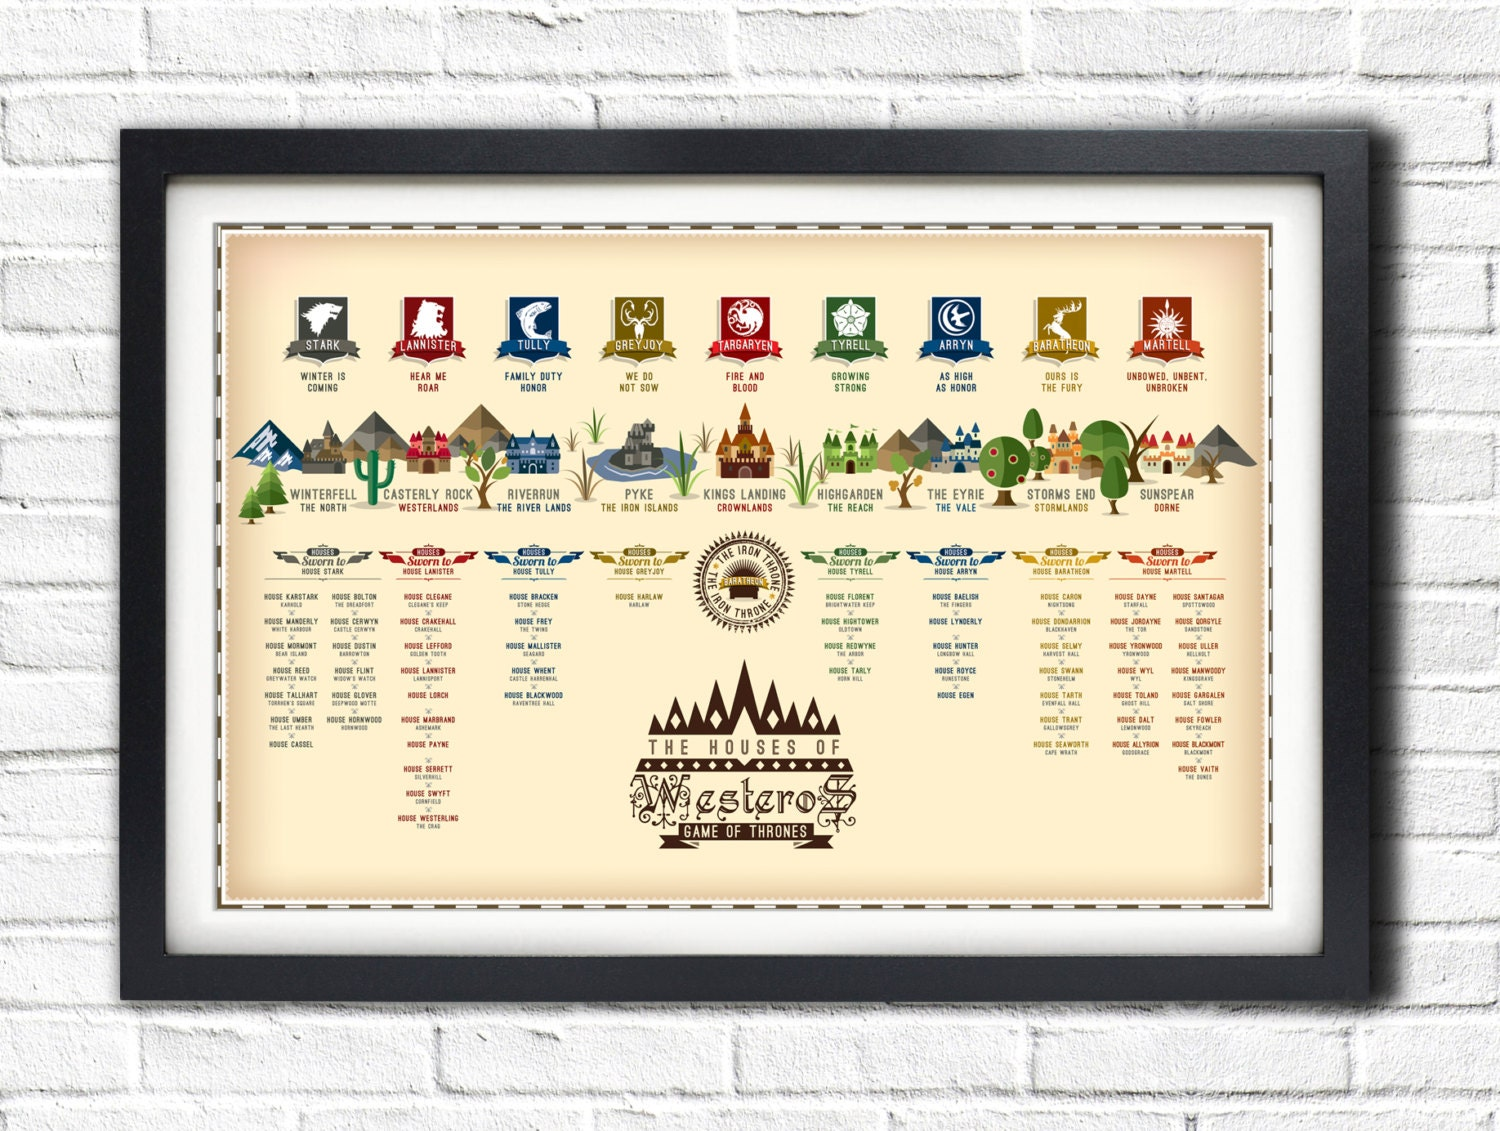 game of thrones westeros houses 19x13 poster. Black Bedroom Furniture Sets. Home Design Ideas